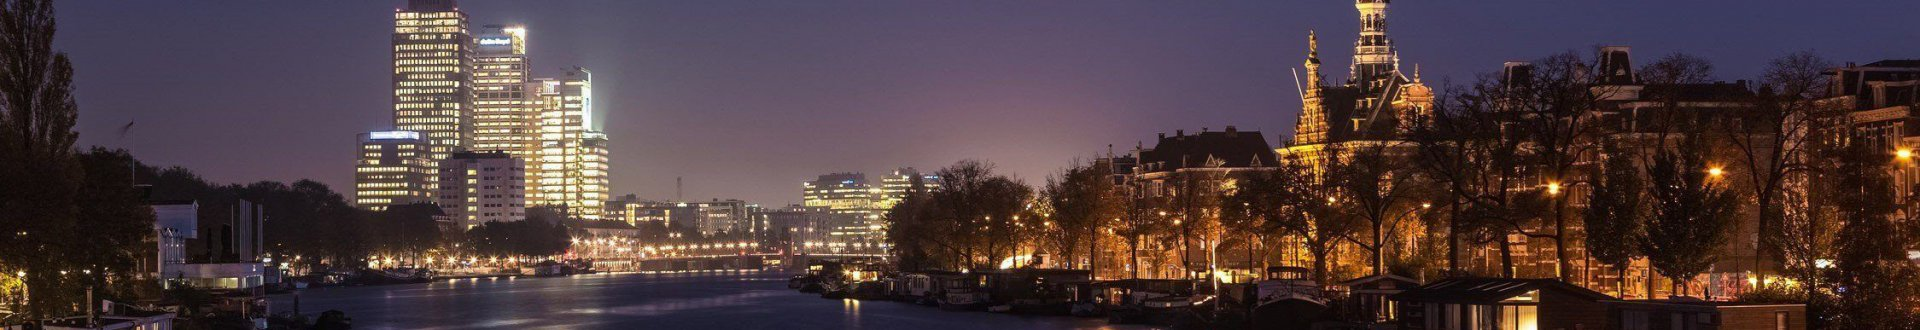 Amstel river by night